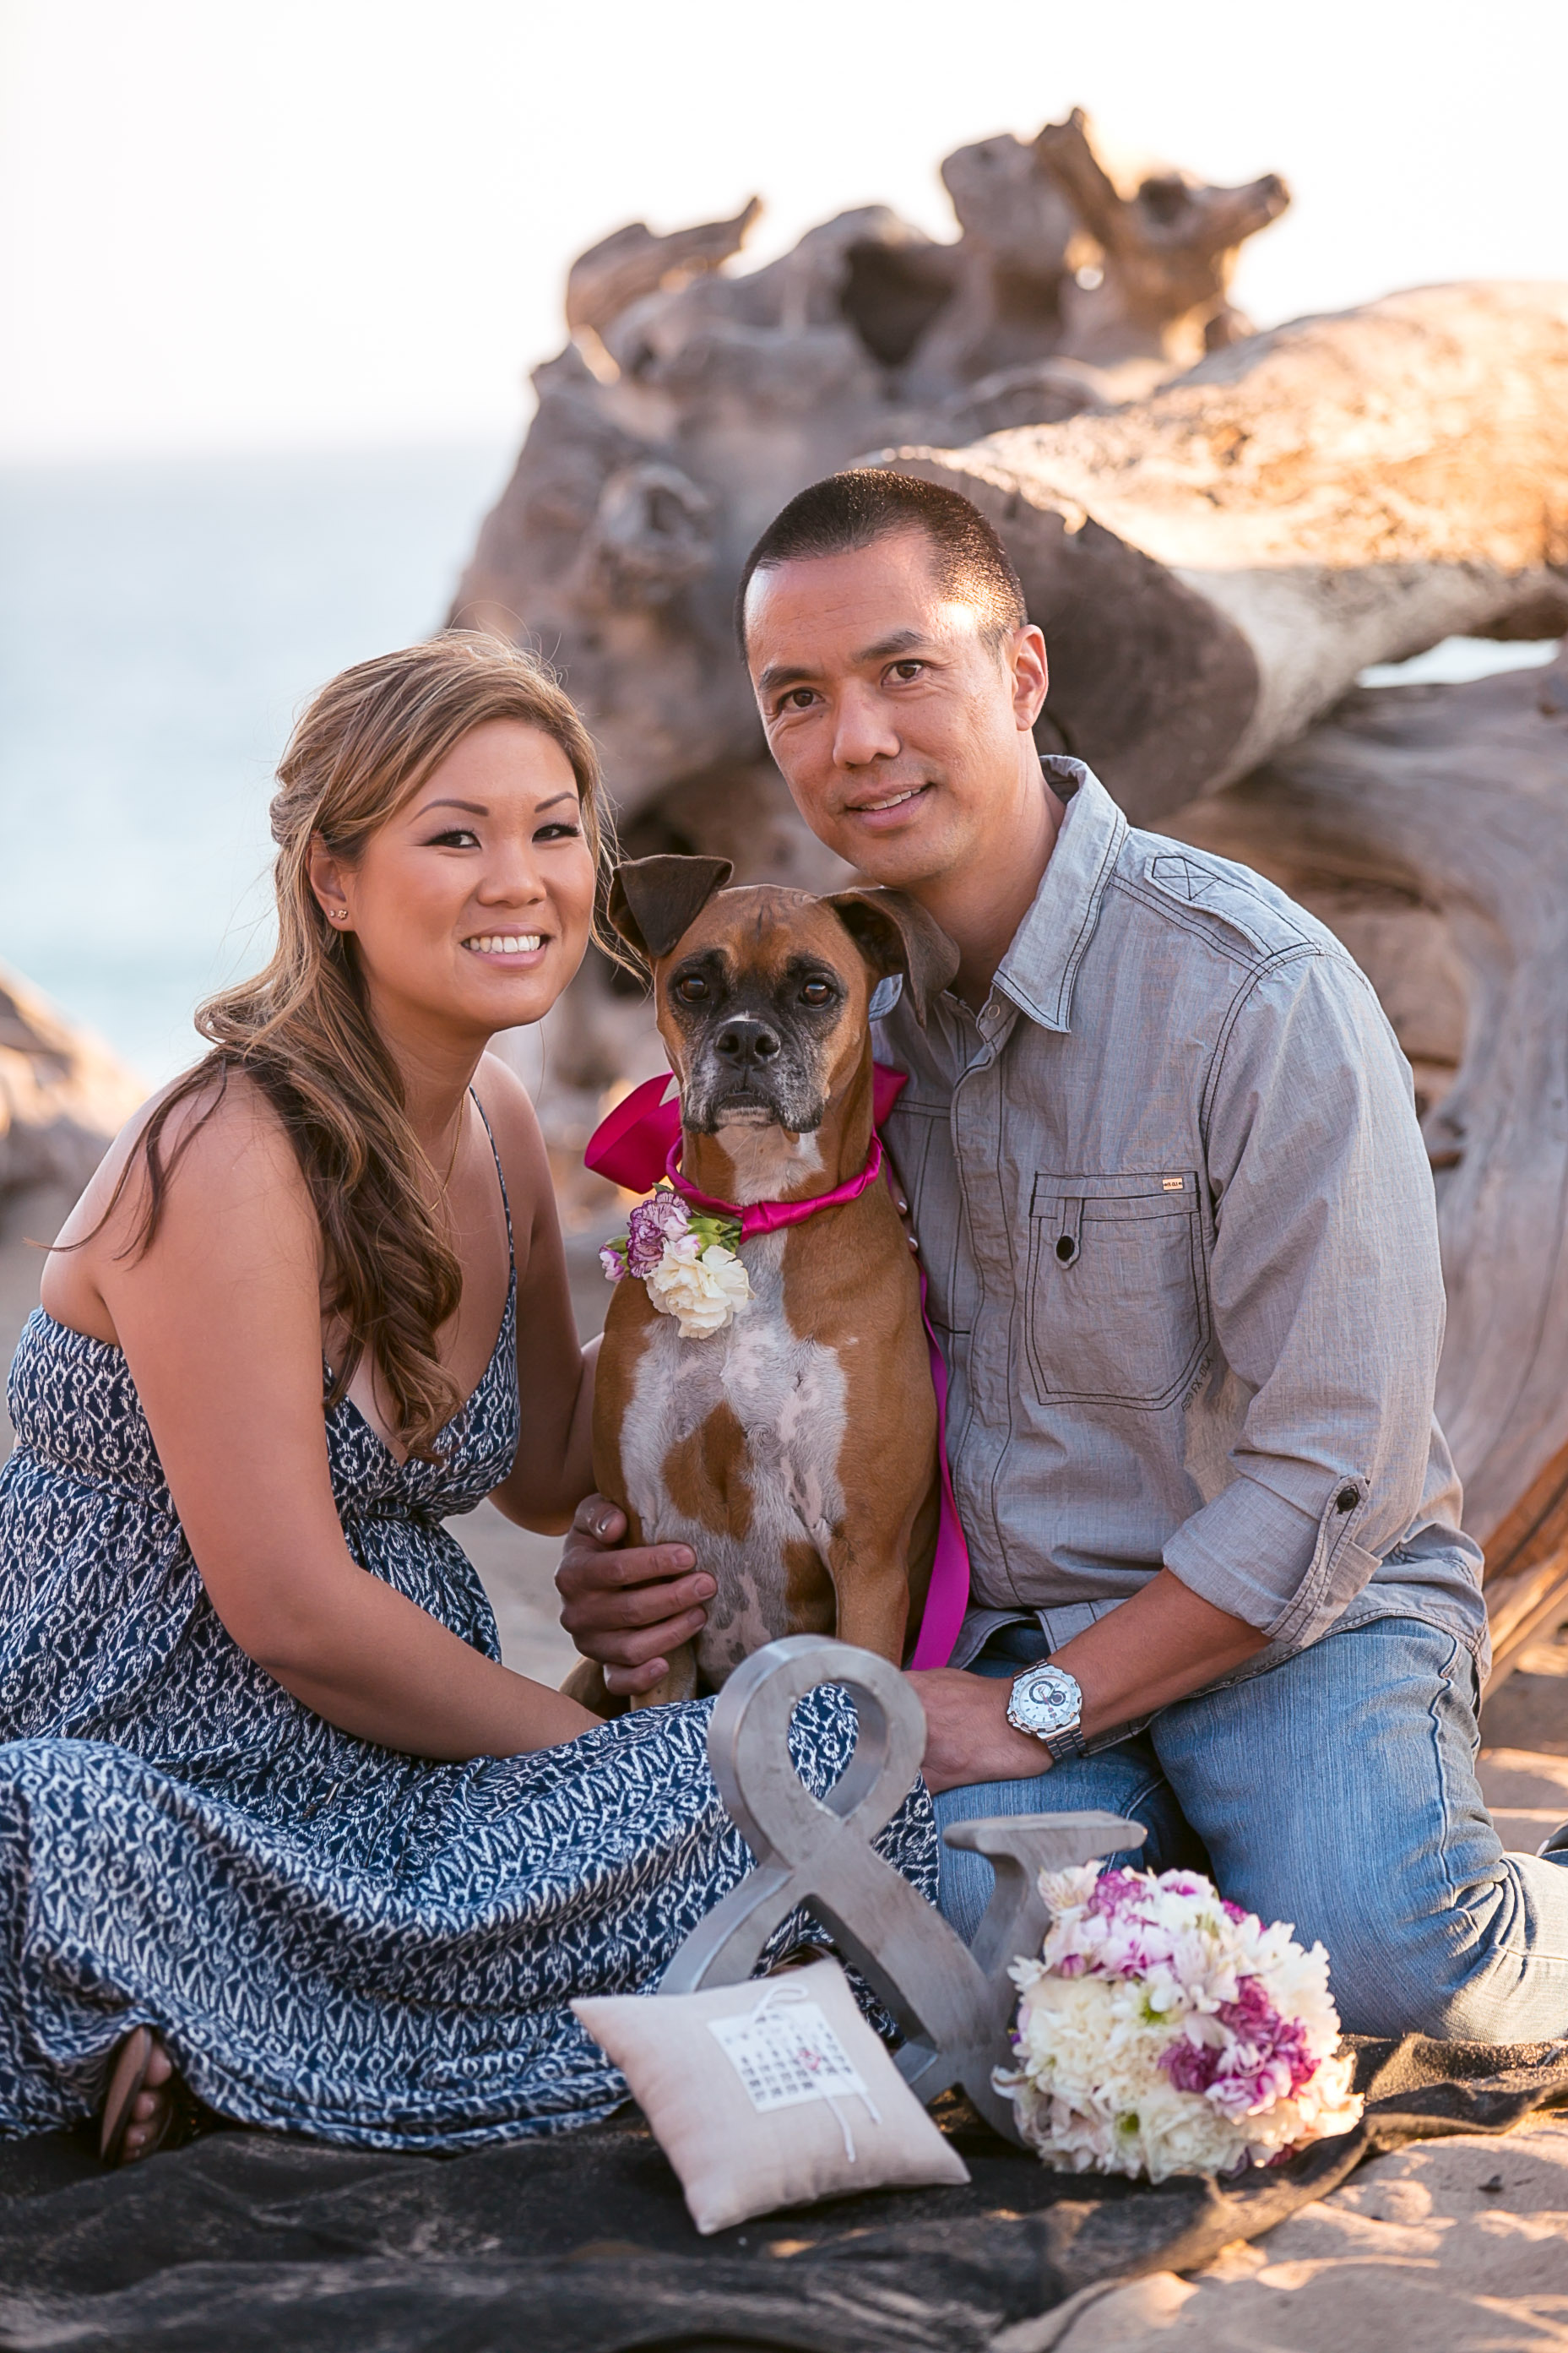 20131020_CHRIS_JEFF_MALIBU_BEACH_ENGAGEMENT_CHRIS_HOLT_PHOTOGRAPHY_007.jpg